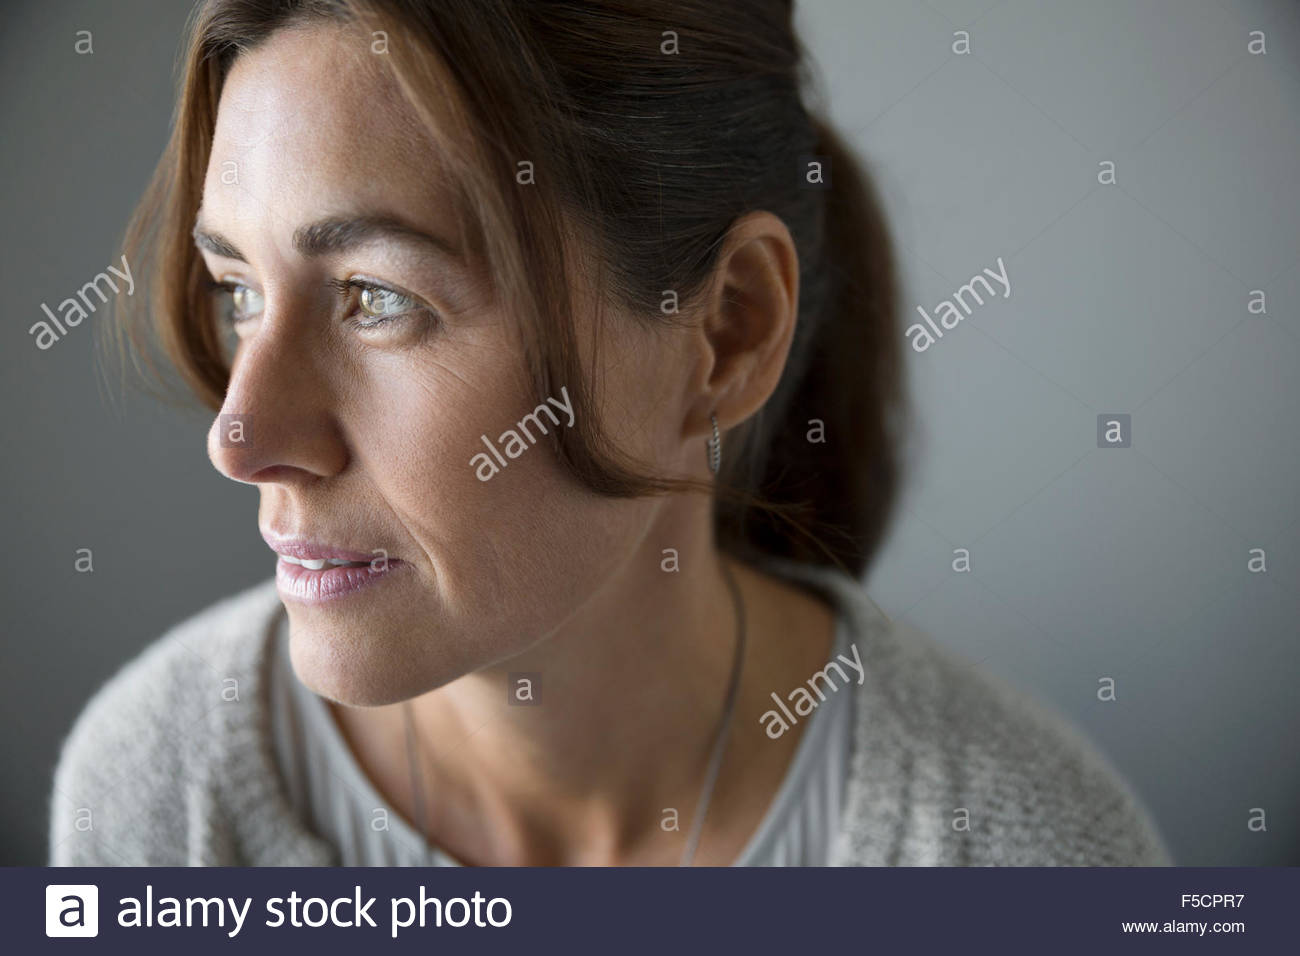 Close up pensive brunette woman looking away - Stock Image